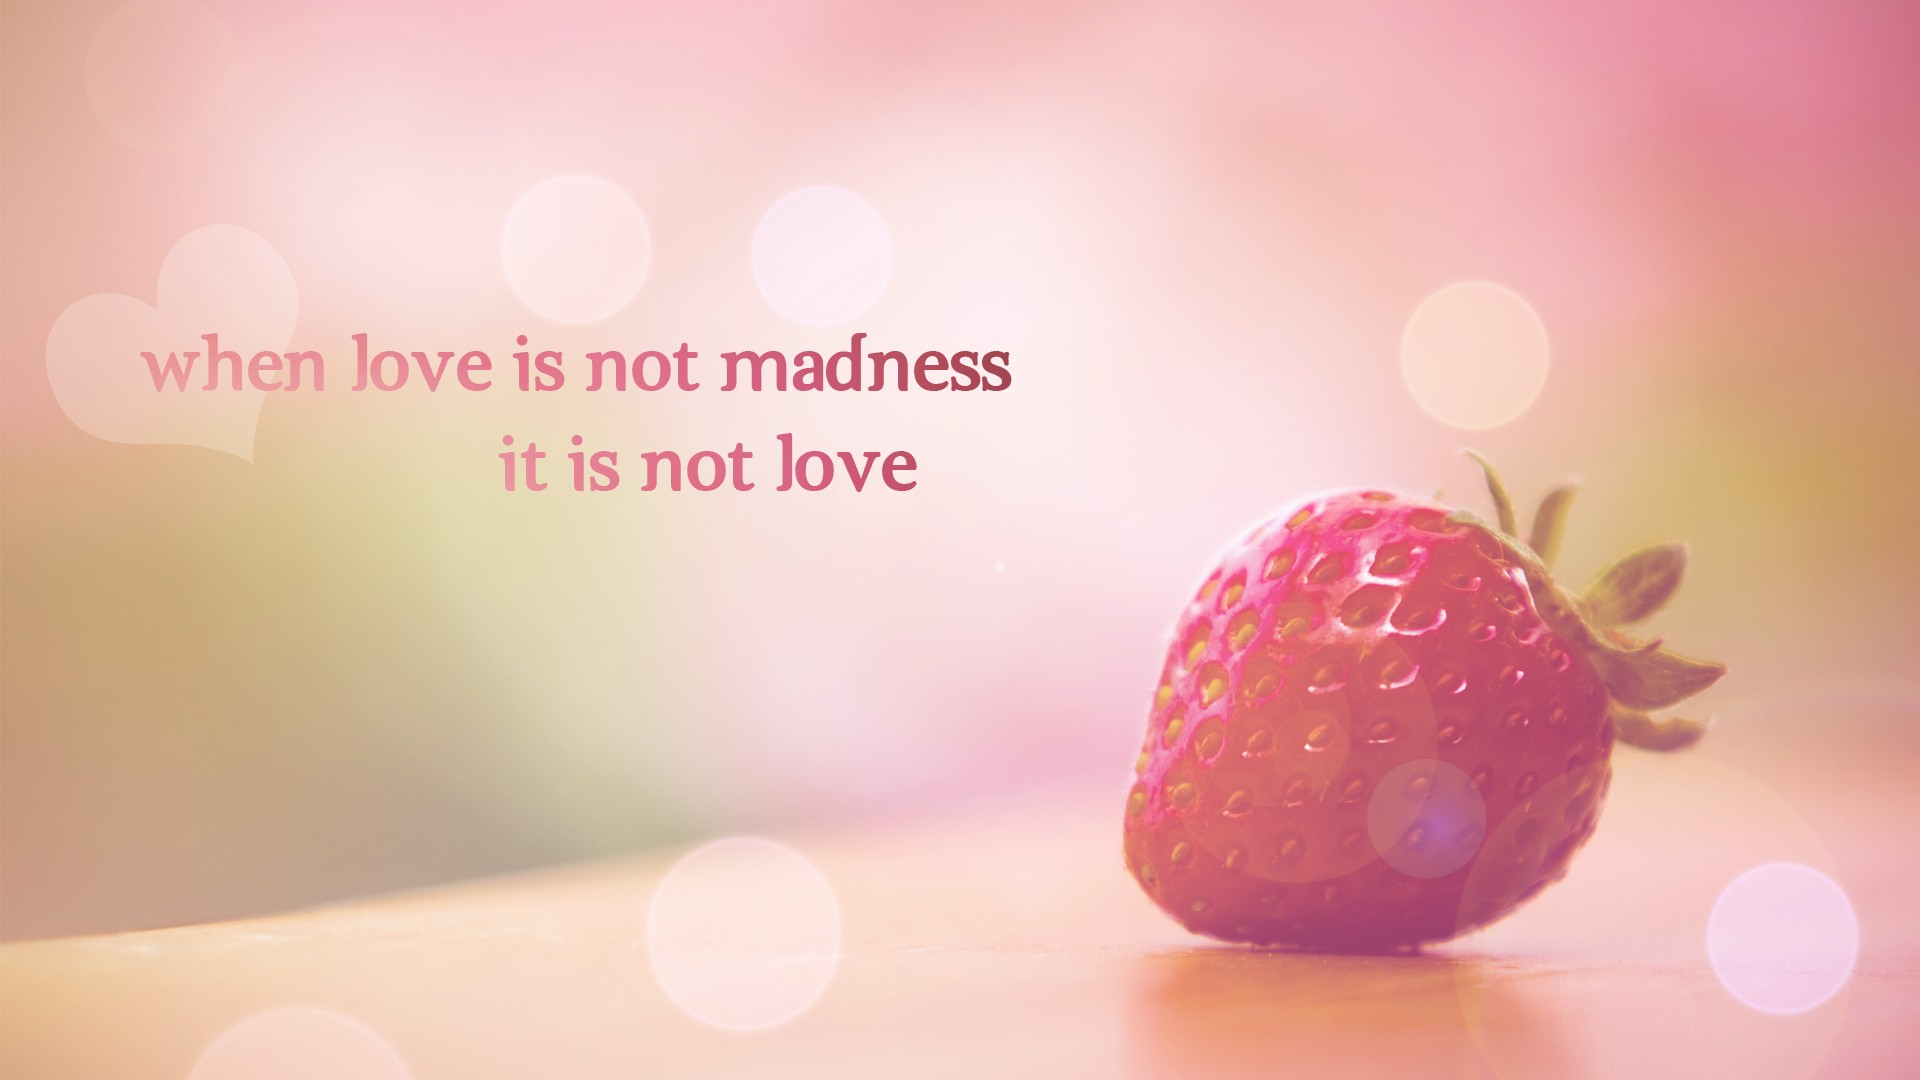 Wallpapers Love Quotes : Love Quotes Wallpaper - Wallpaper, High Definition, High Quality ...